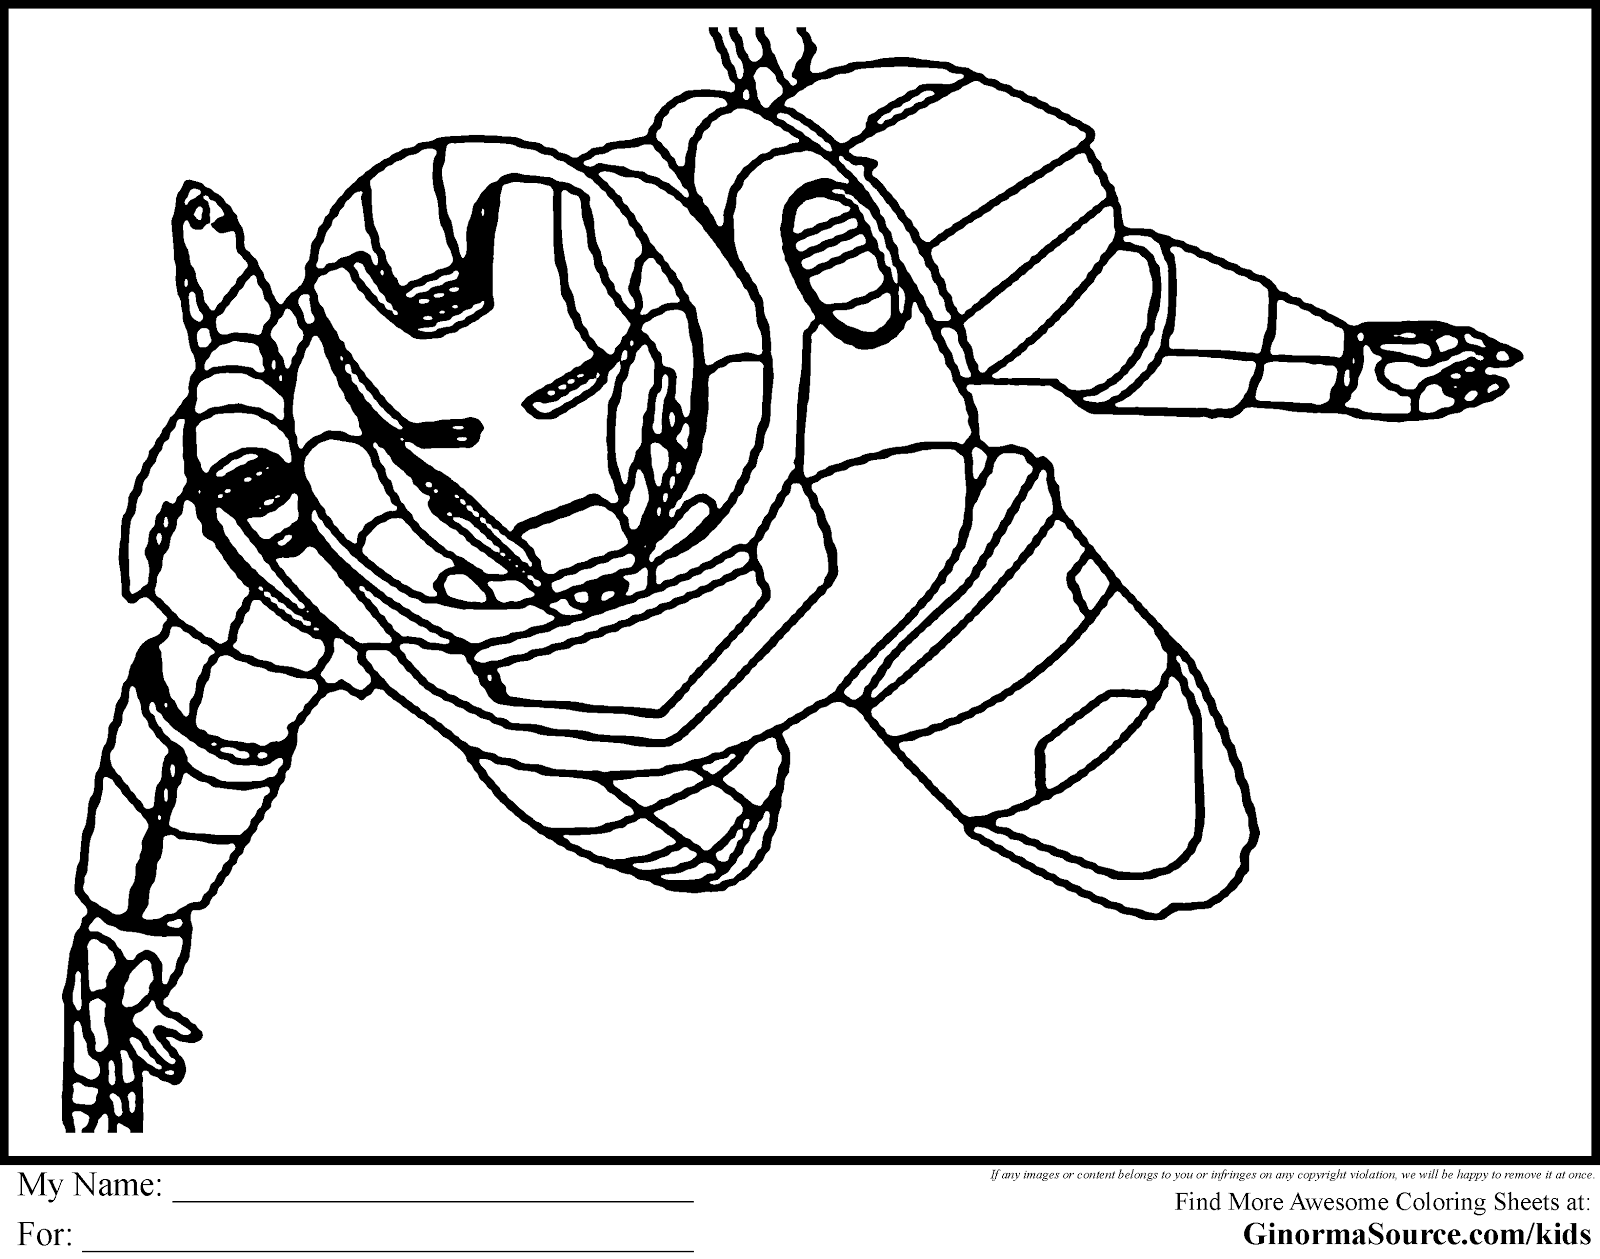 superhero coloring page superhero coloring pages to download and print for free superhero page coloring